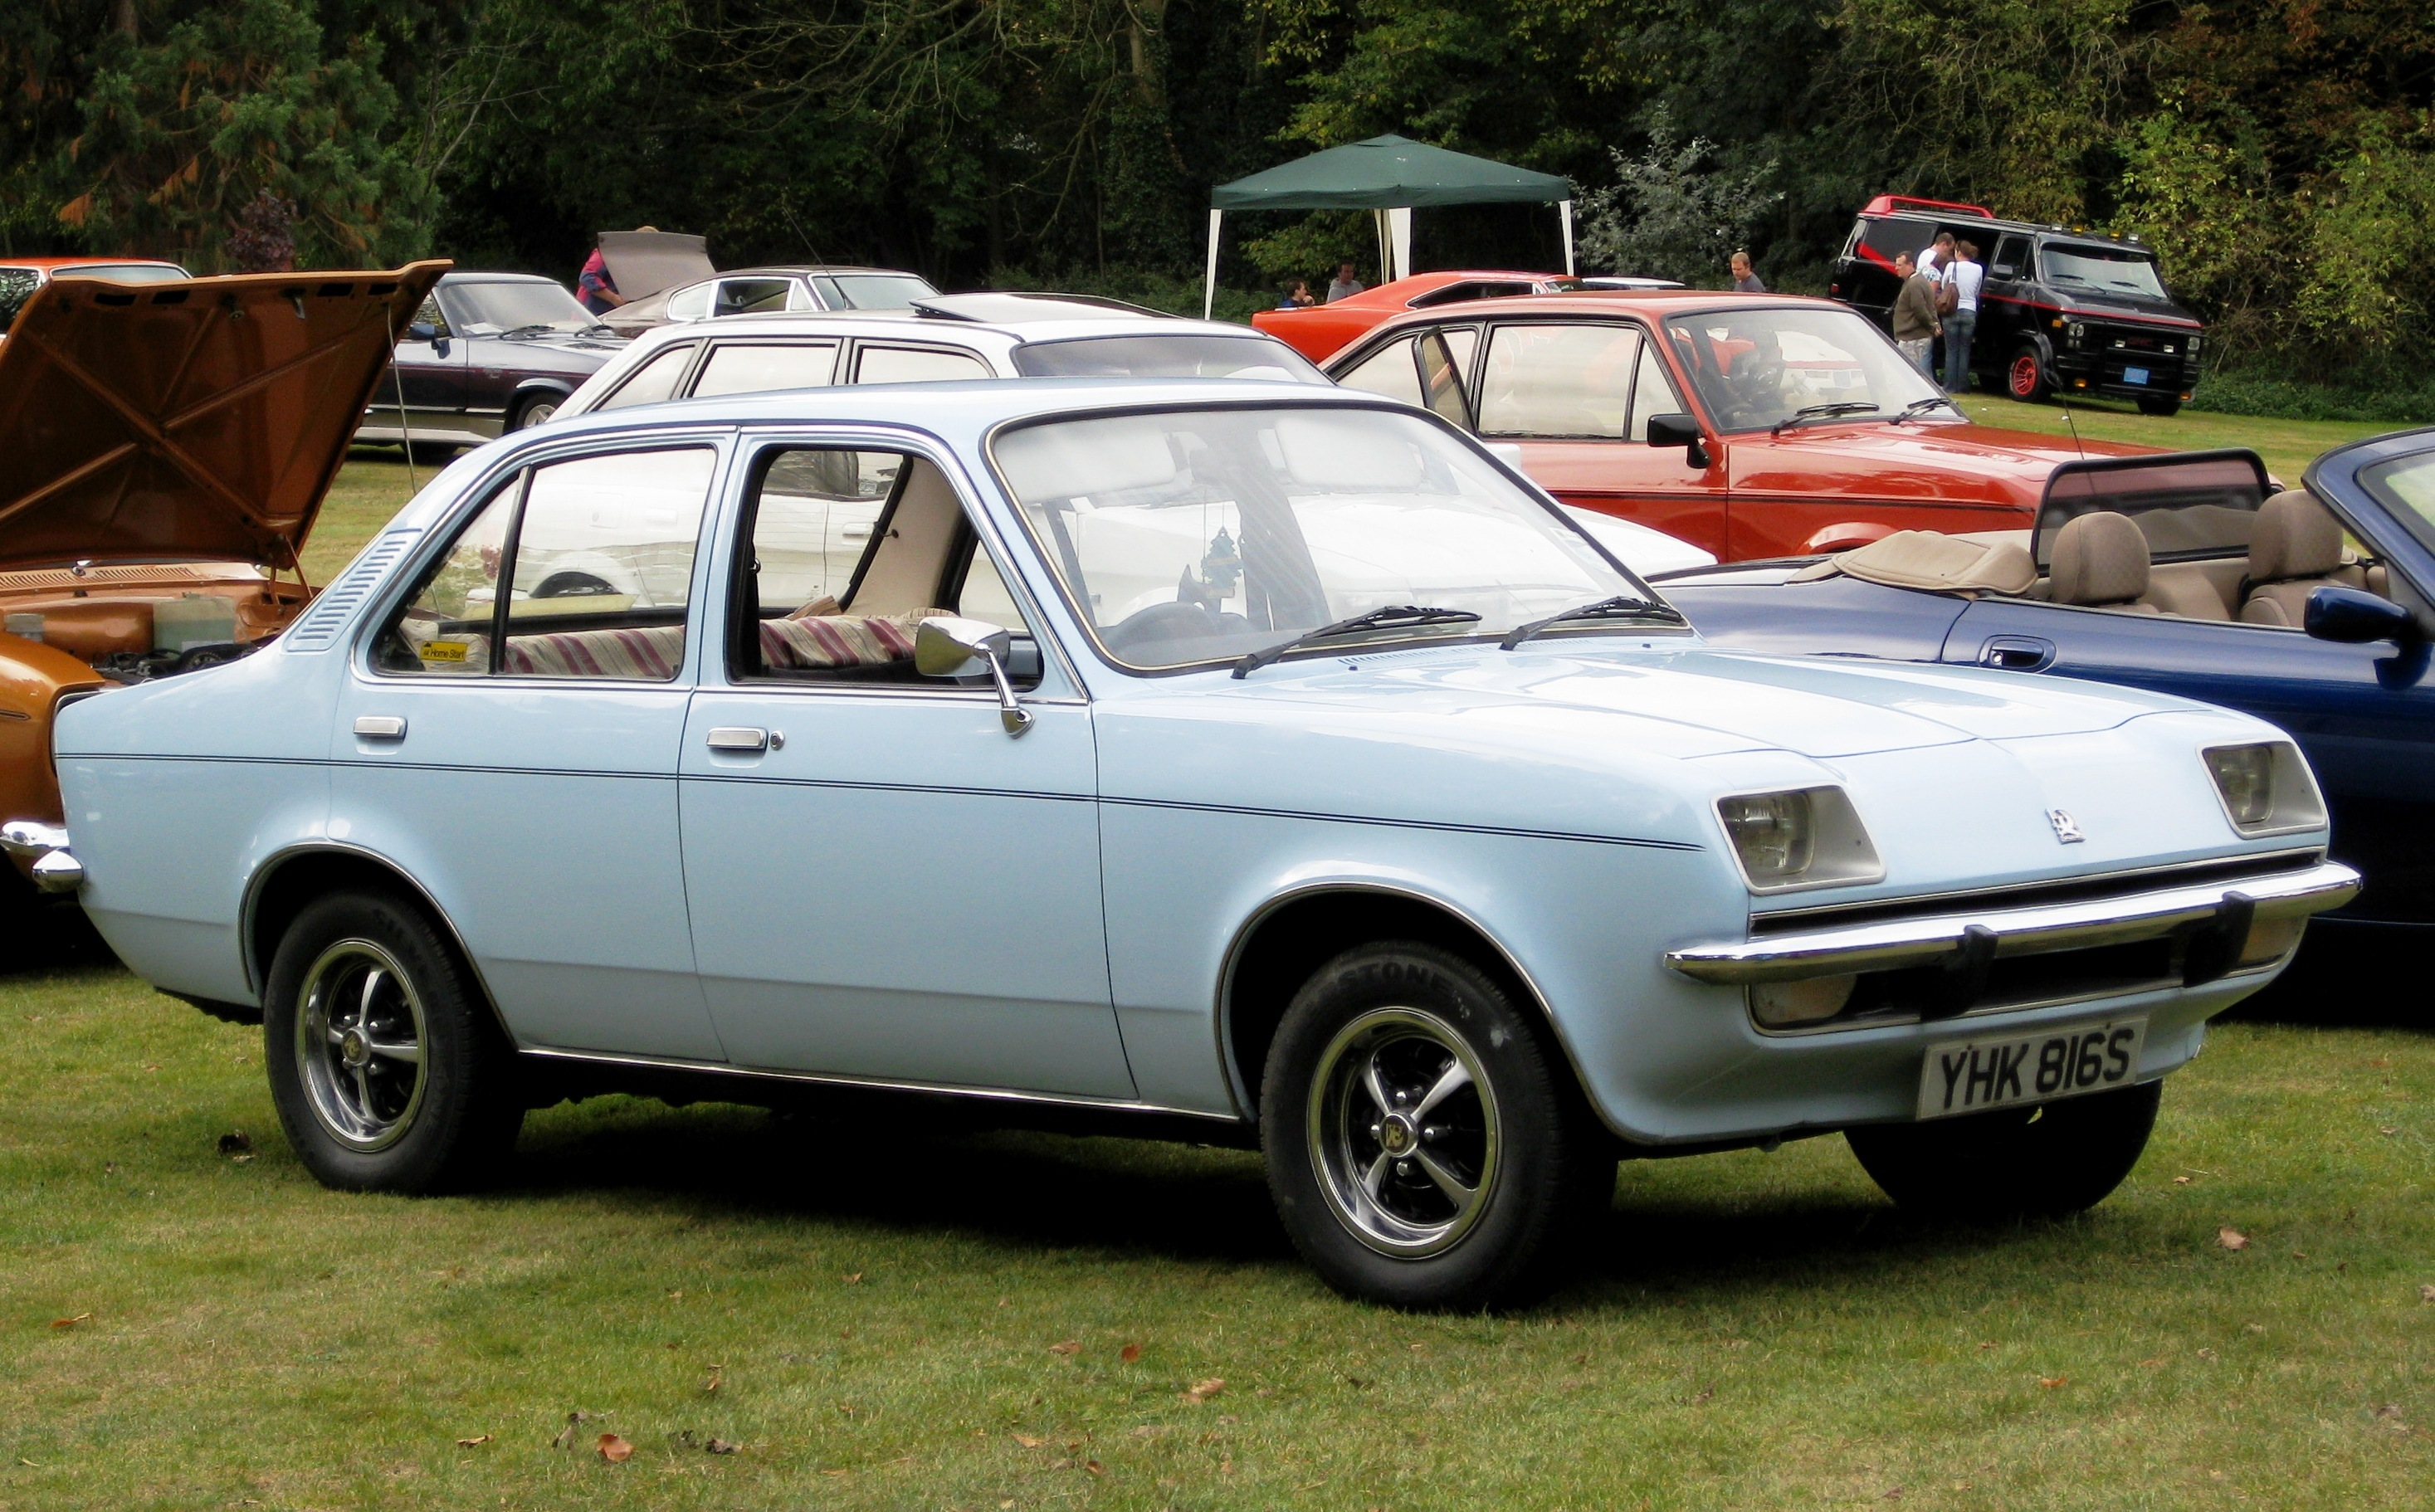 D Car Logo >> File:Vauxhall Chevette 4 d first registered 31 March 1978 1256cc.JPG - Wikimedia Commons